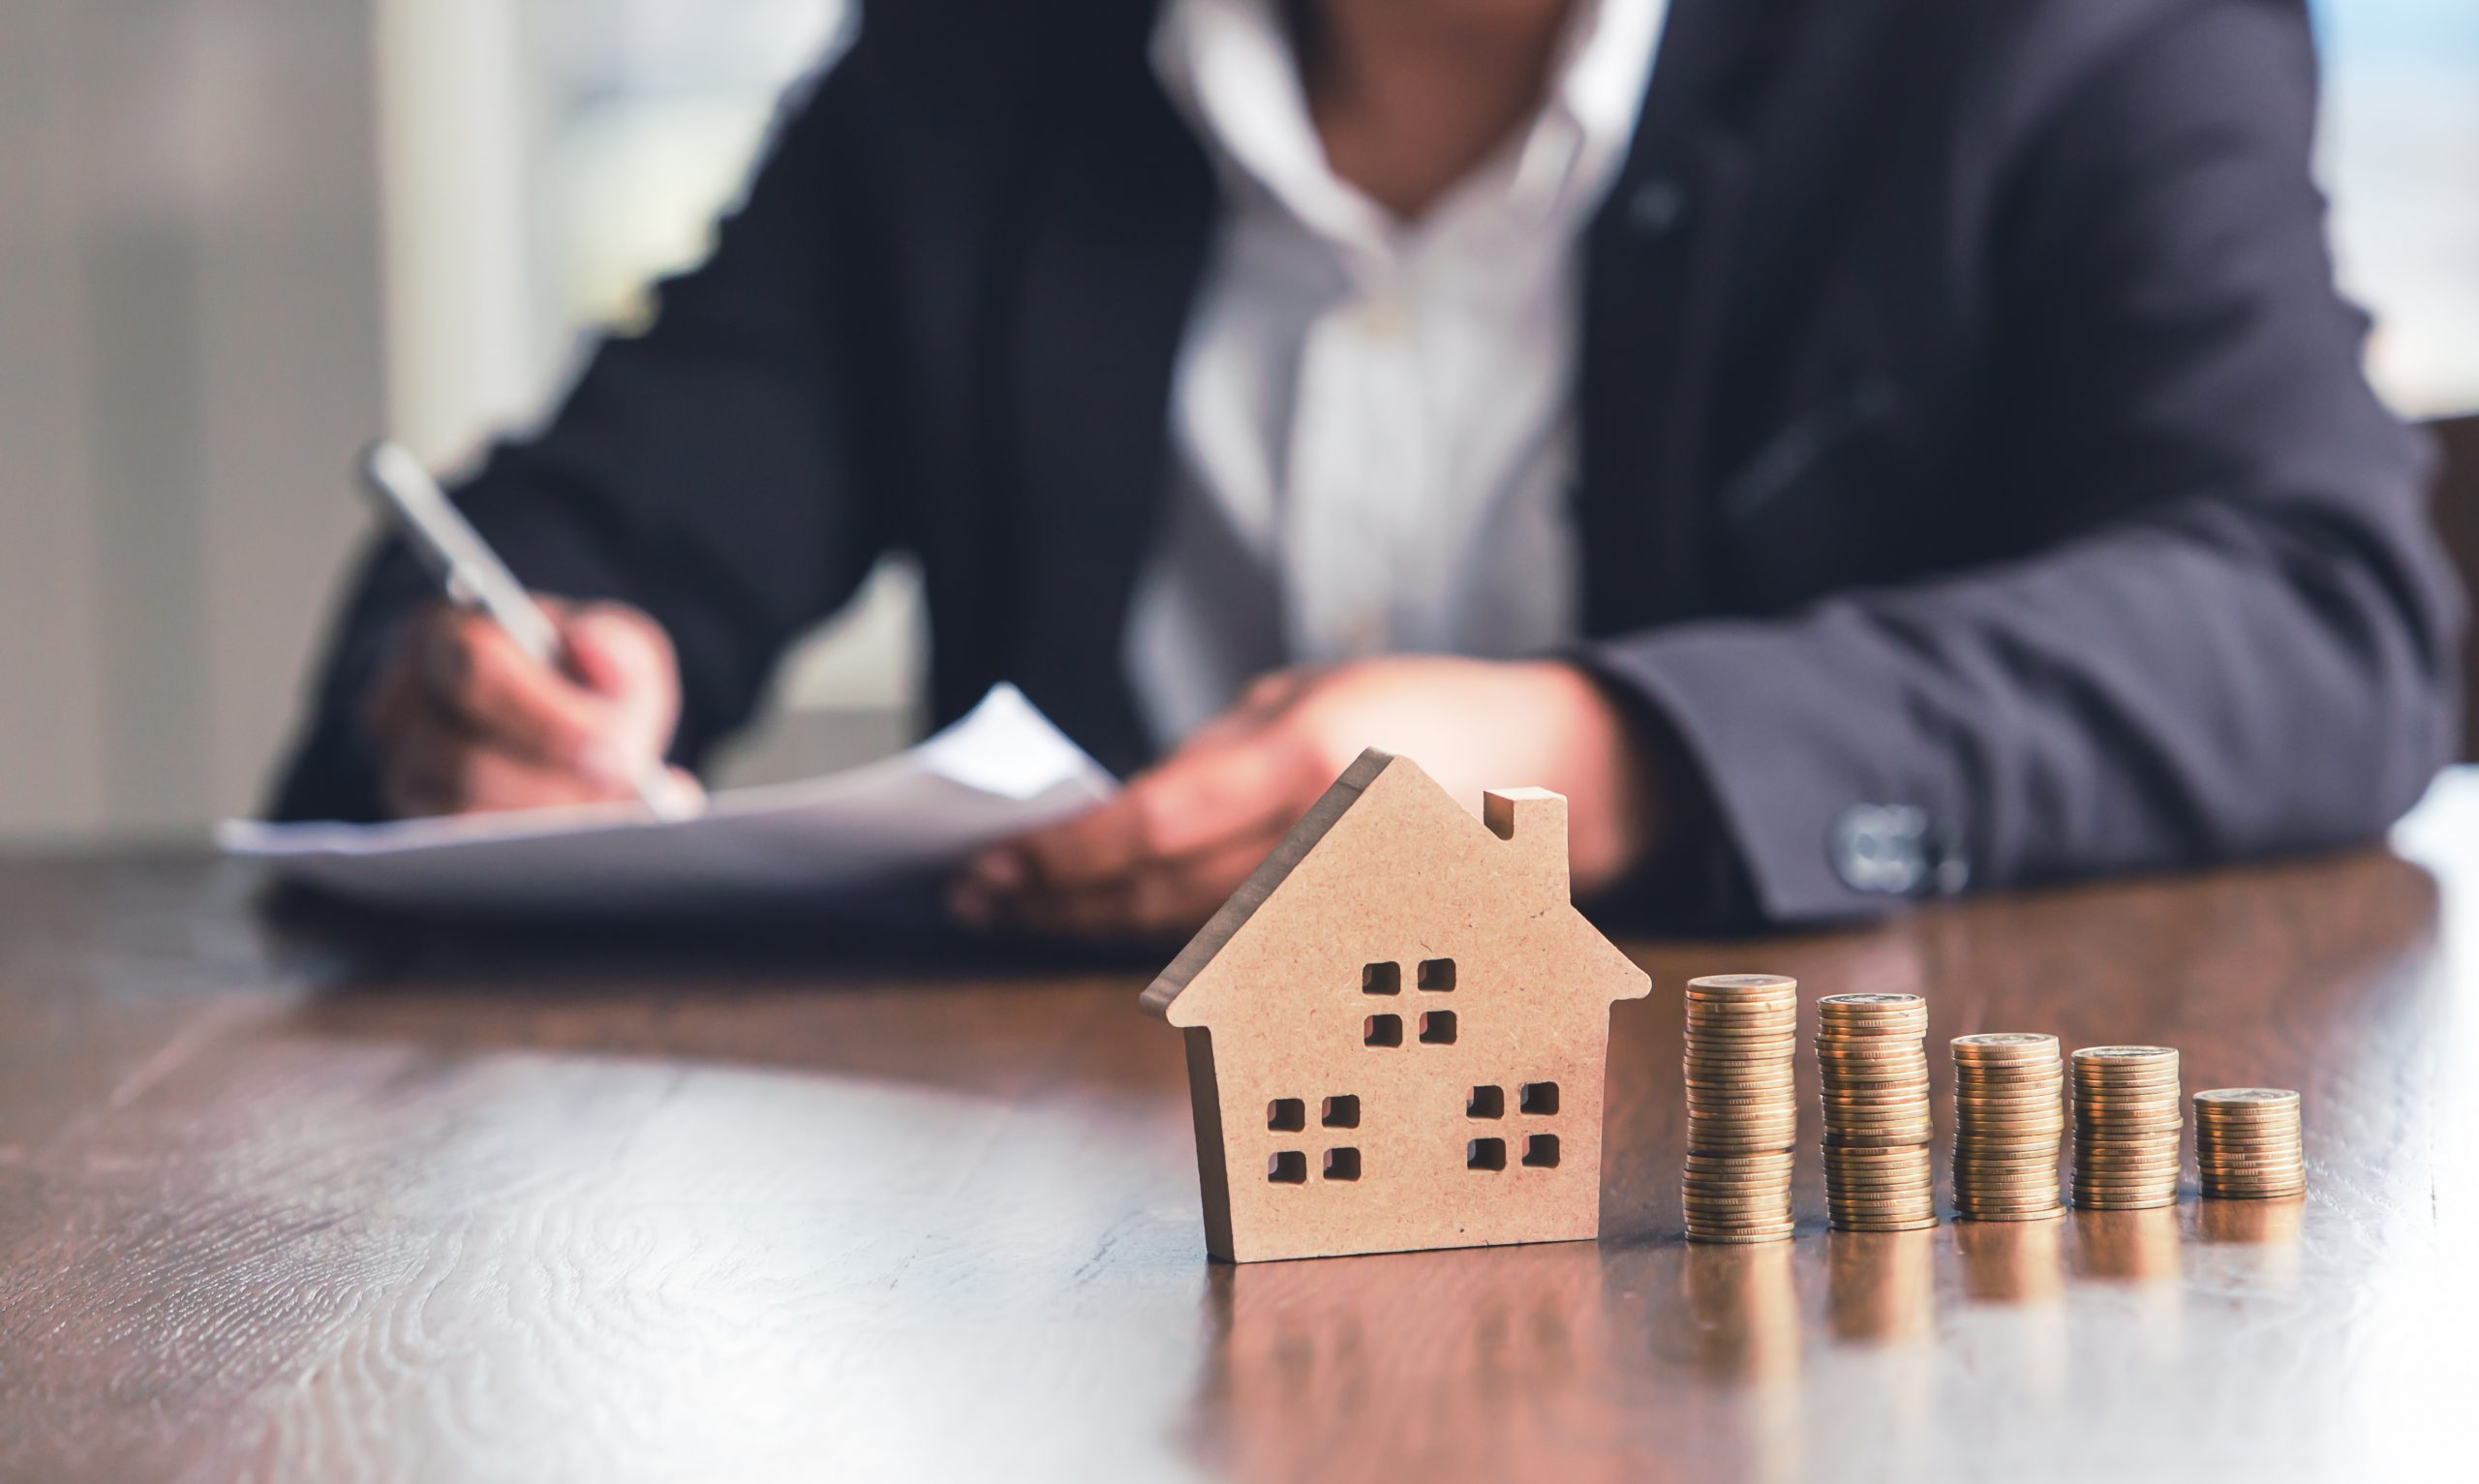 Can a Landlord recover the past rent during the Eviction Process